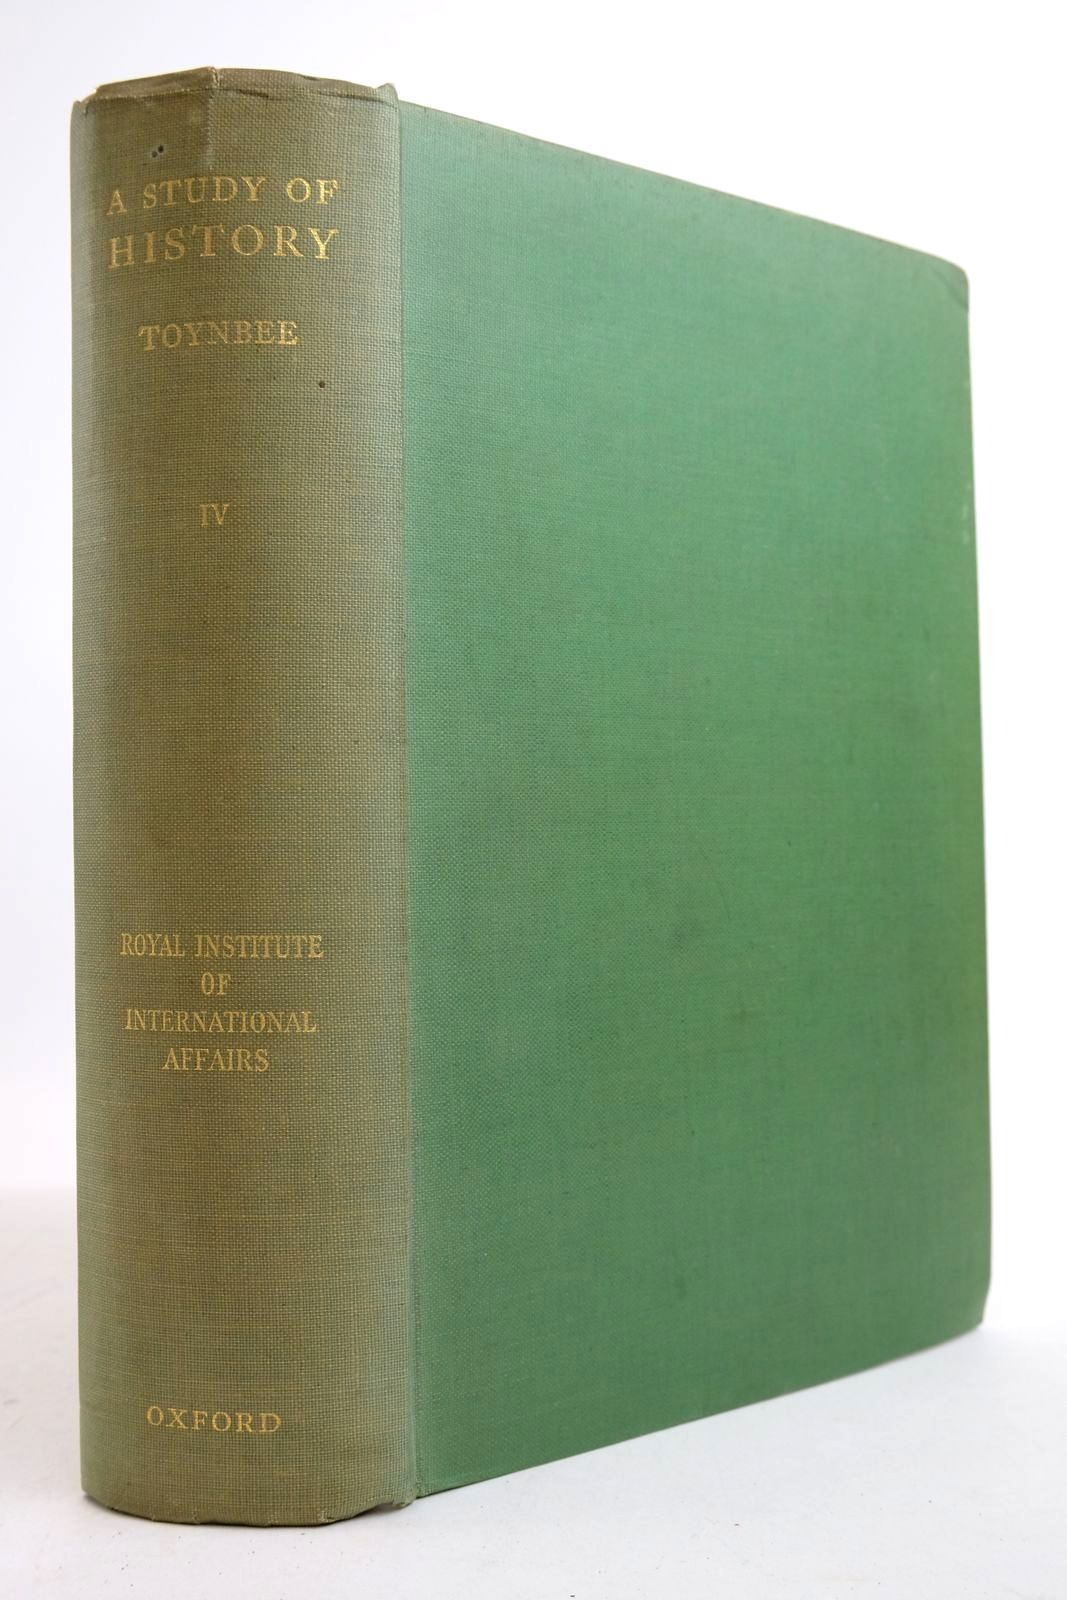 Photo of A STUDY OF HISTORY VOLUME IV- Stock Number: 2134961